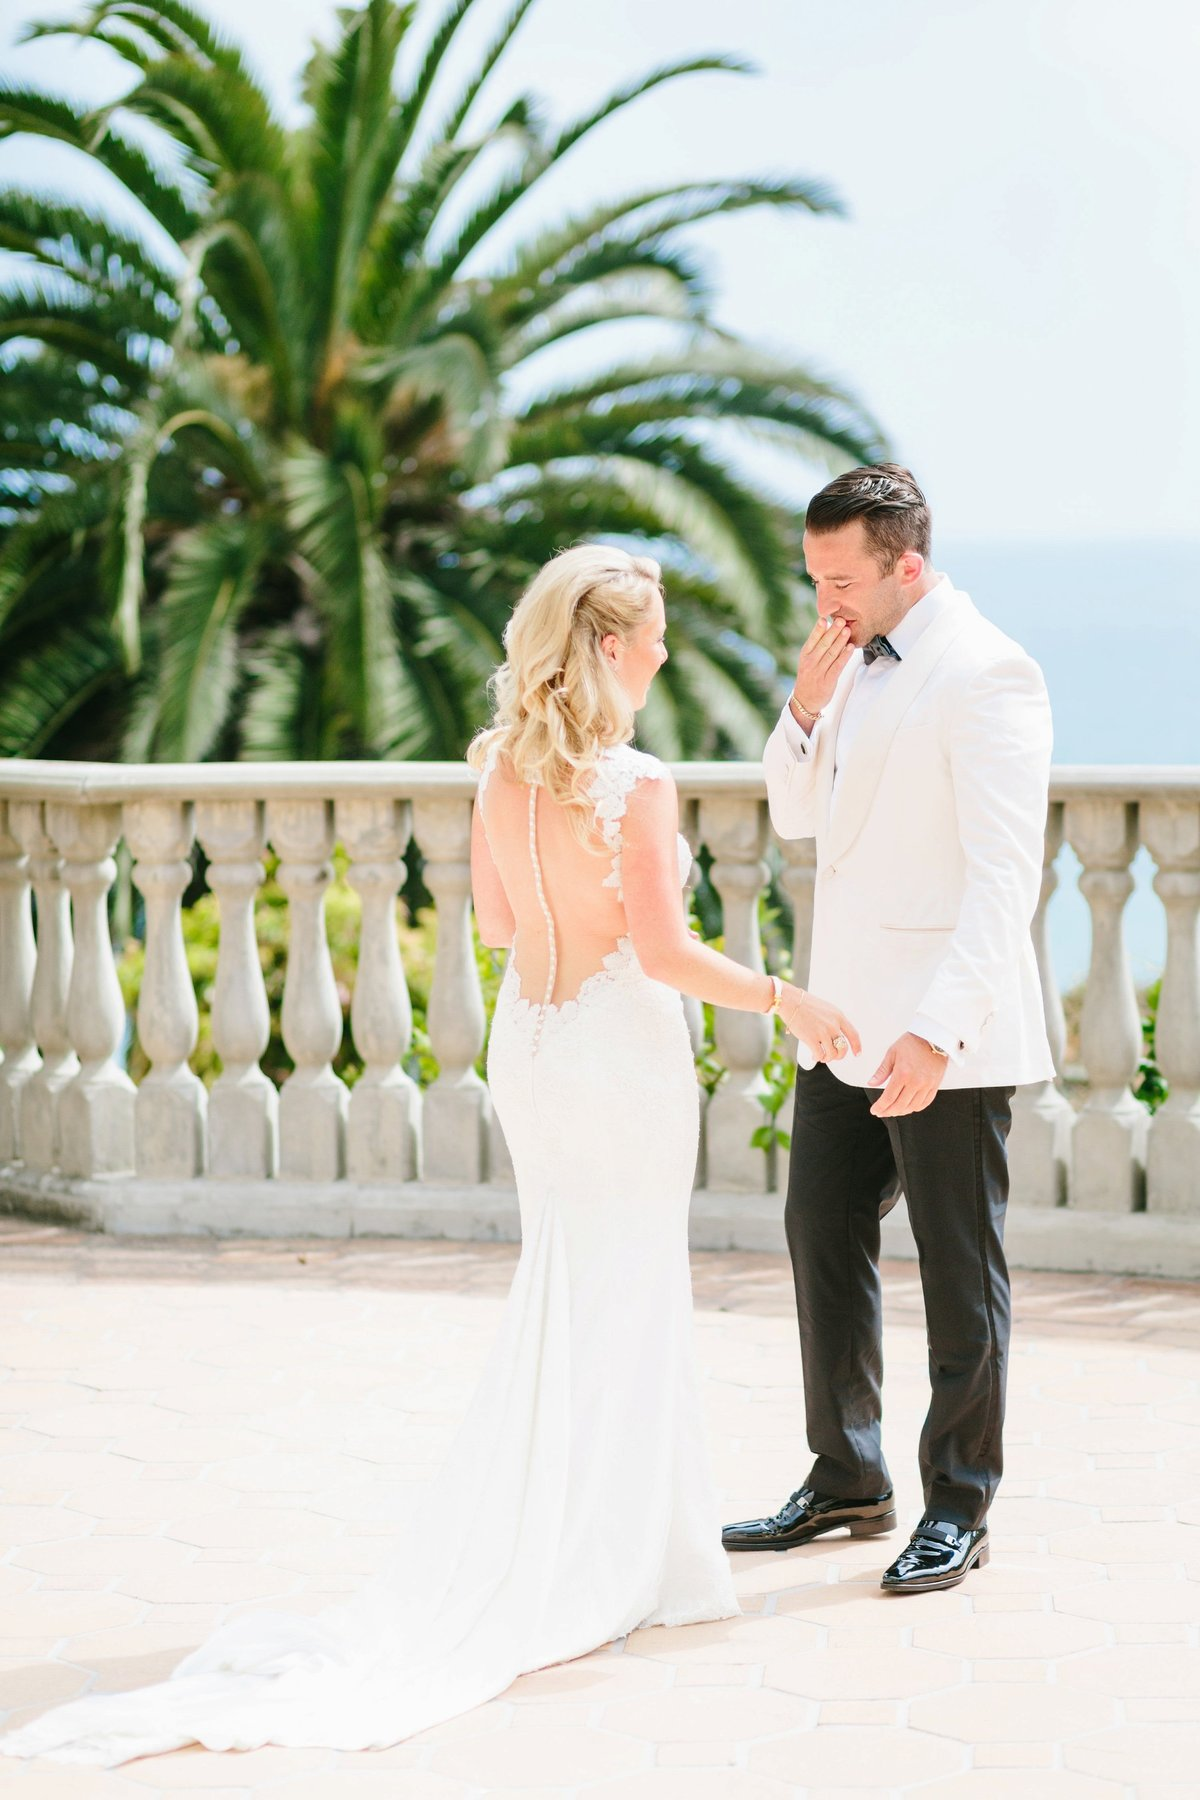 Best California Wedding Photographer-Jodee Debes Photography-295